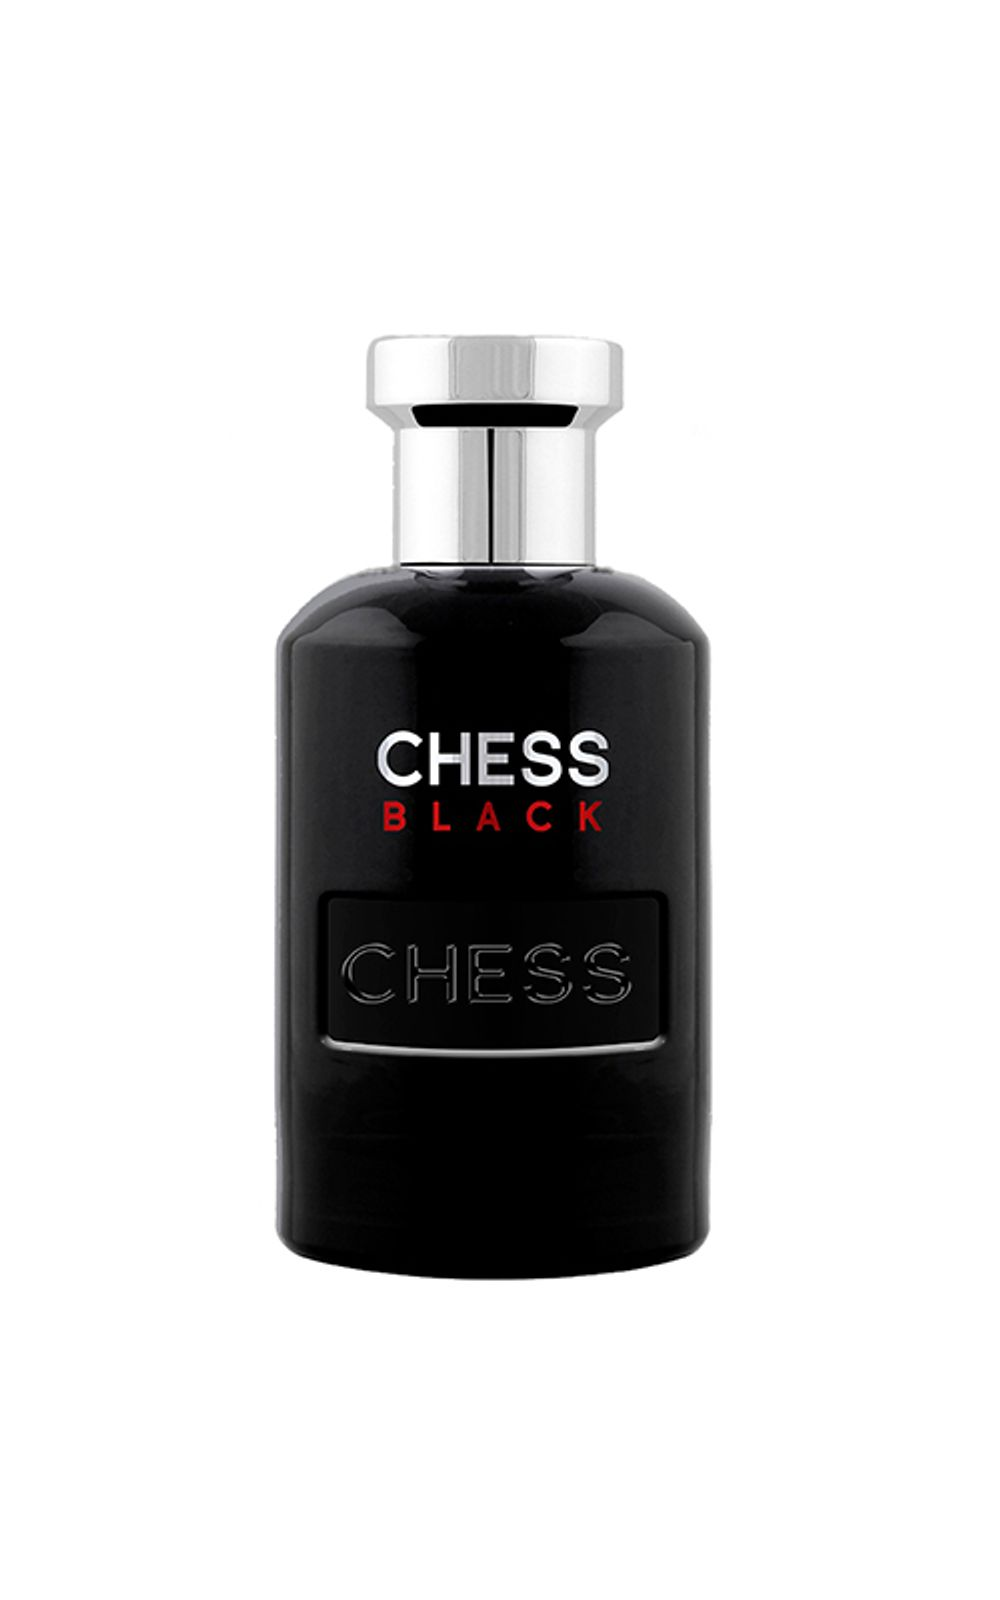 Foto 1 - Chess Black Paris Bleu - Perfume Masculino - Eau de Toilette - 100ml